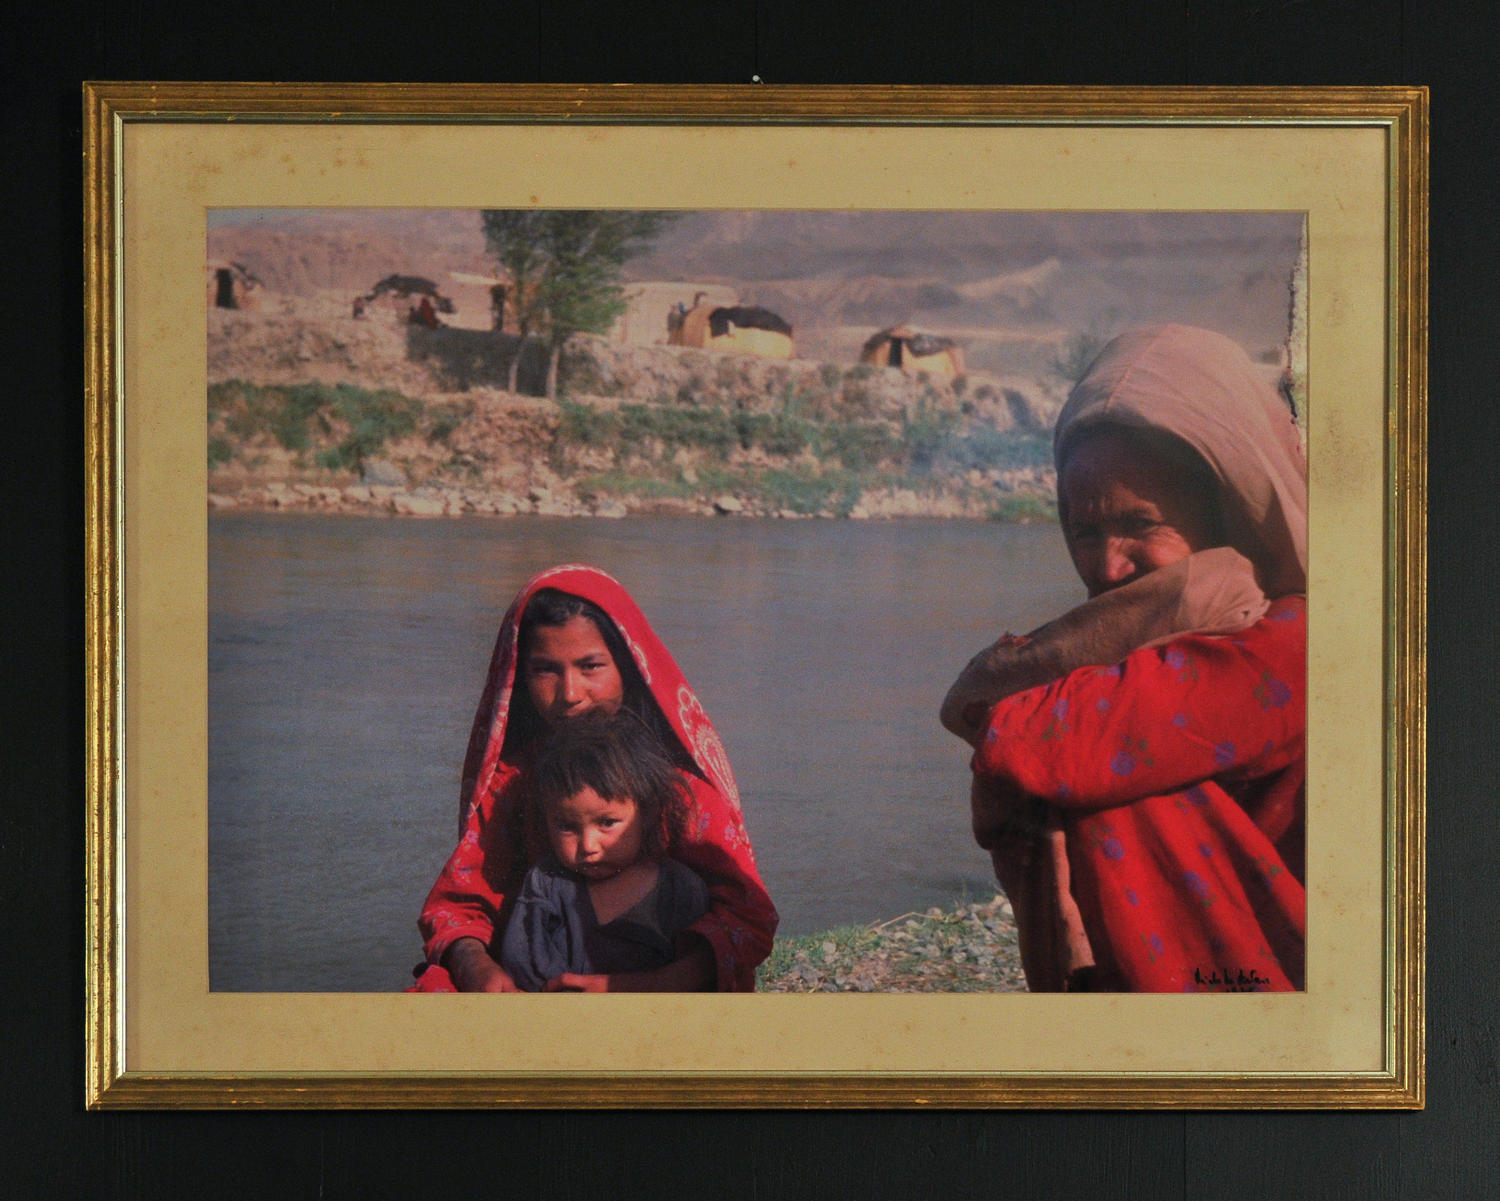 Picture of two women in Afghanistan